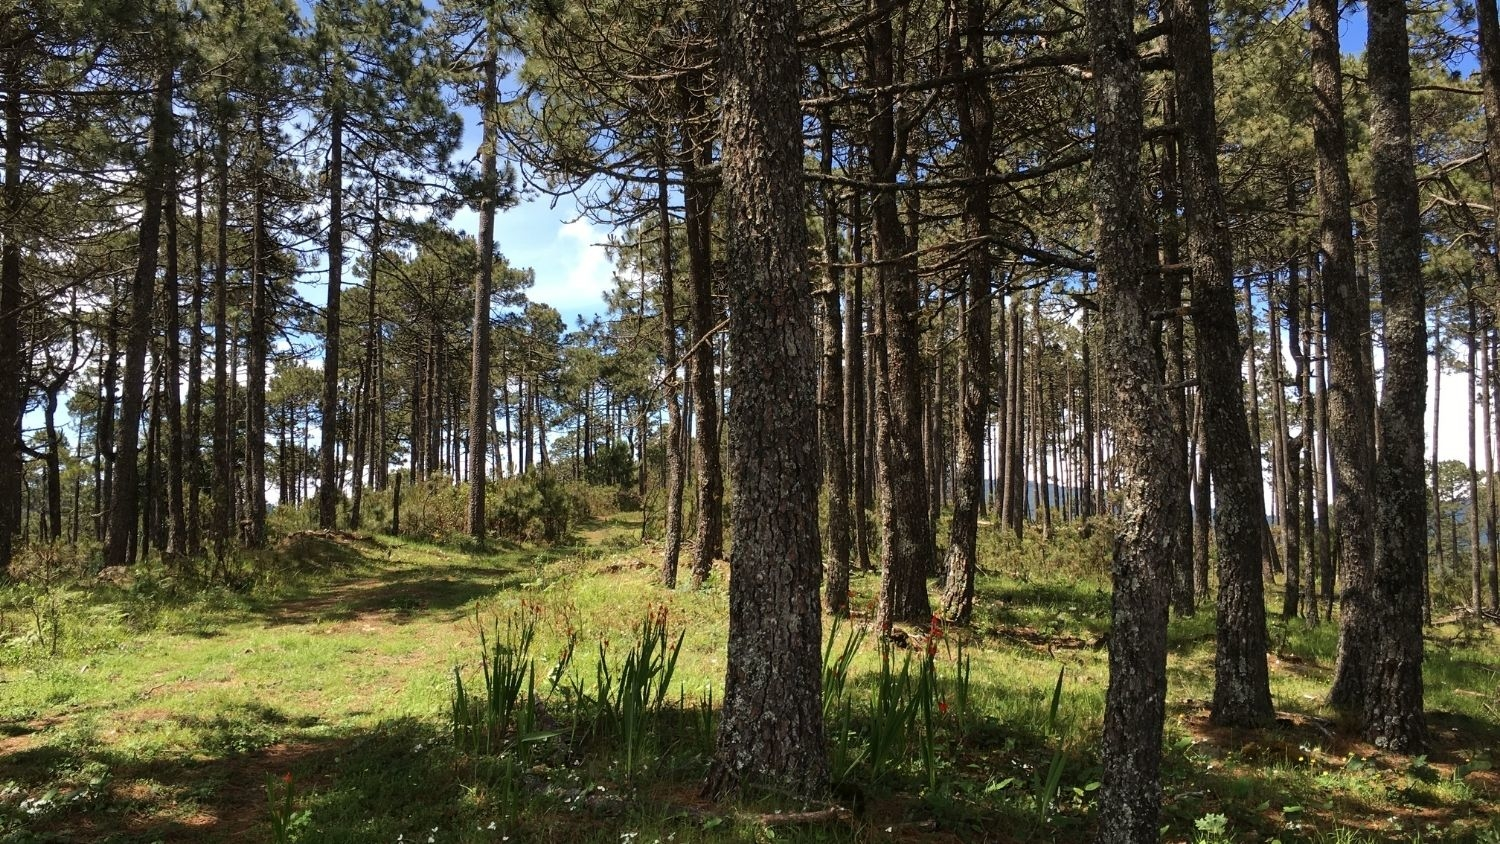 A forest in the mountains of Southwest Mexico - In Mexican Mountains, Some Tree Species Could be Vulnerable to Climate Change - Forestry and Environmental Resources Department at NC State